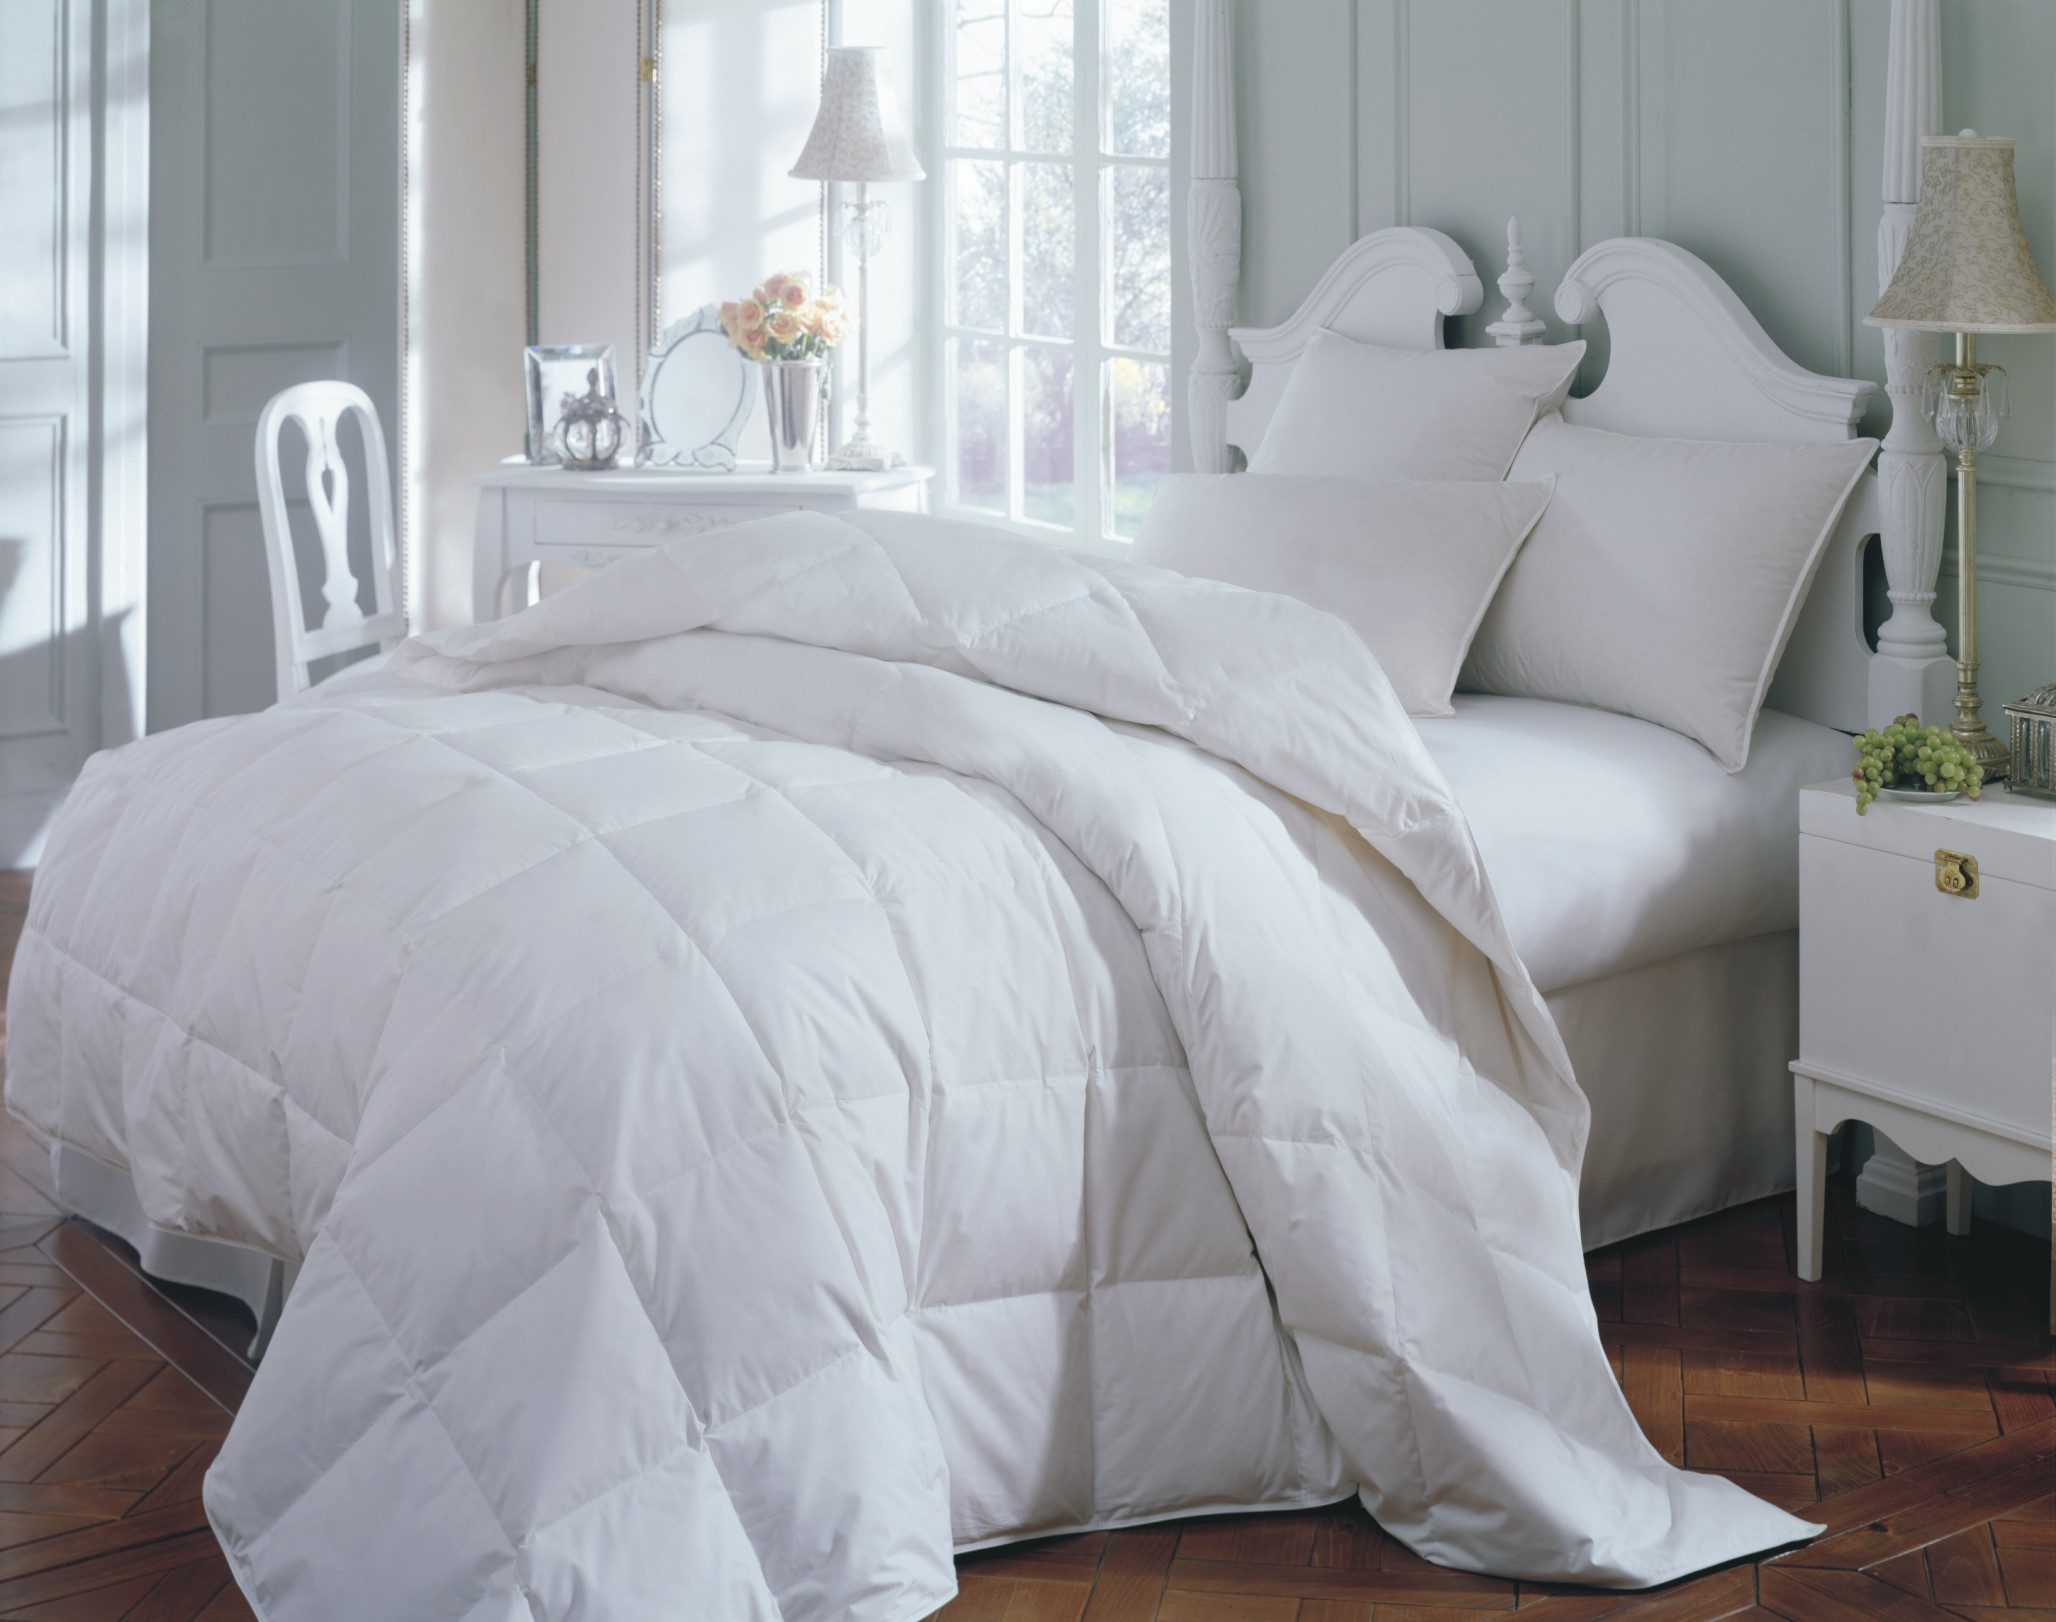 bedroom ideas outstanding comforters including comforter master linen winter sets bedding